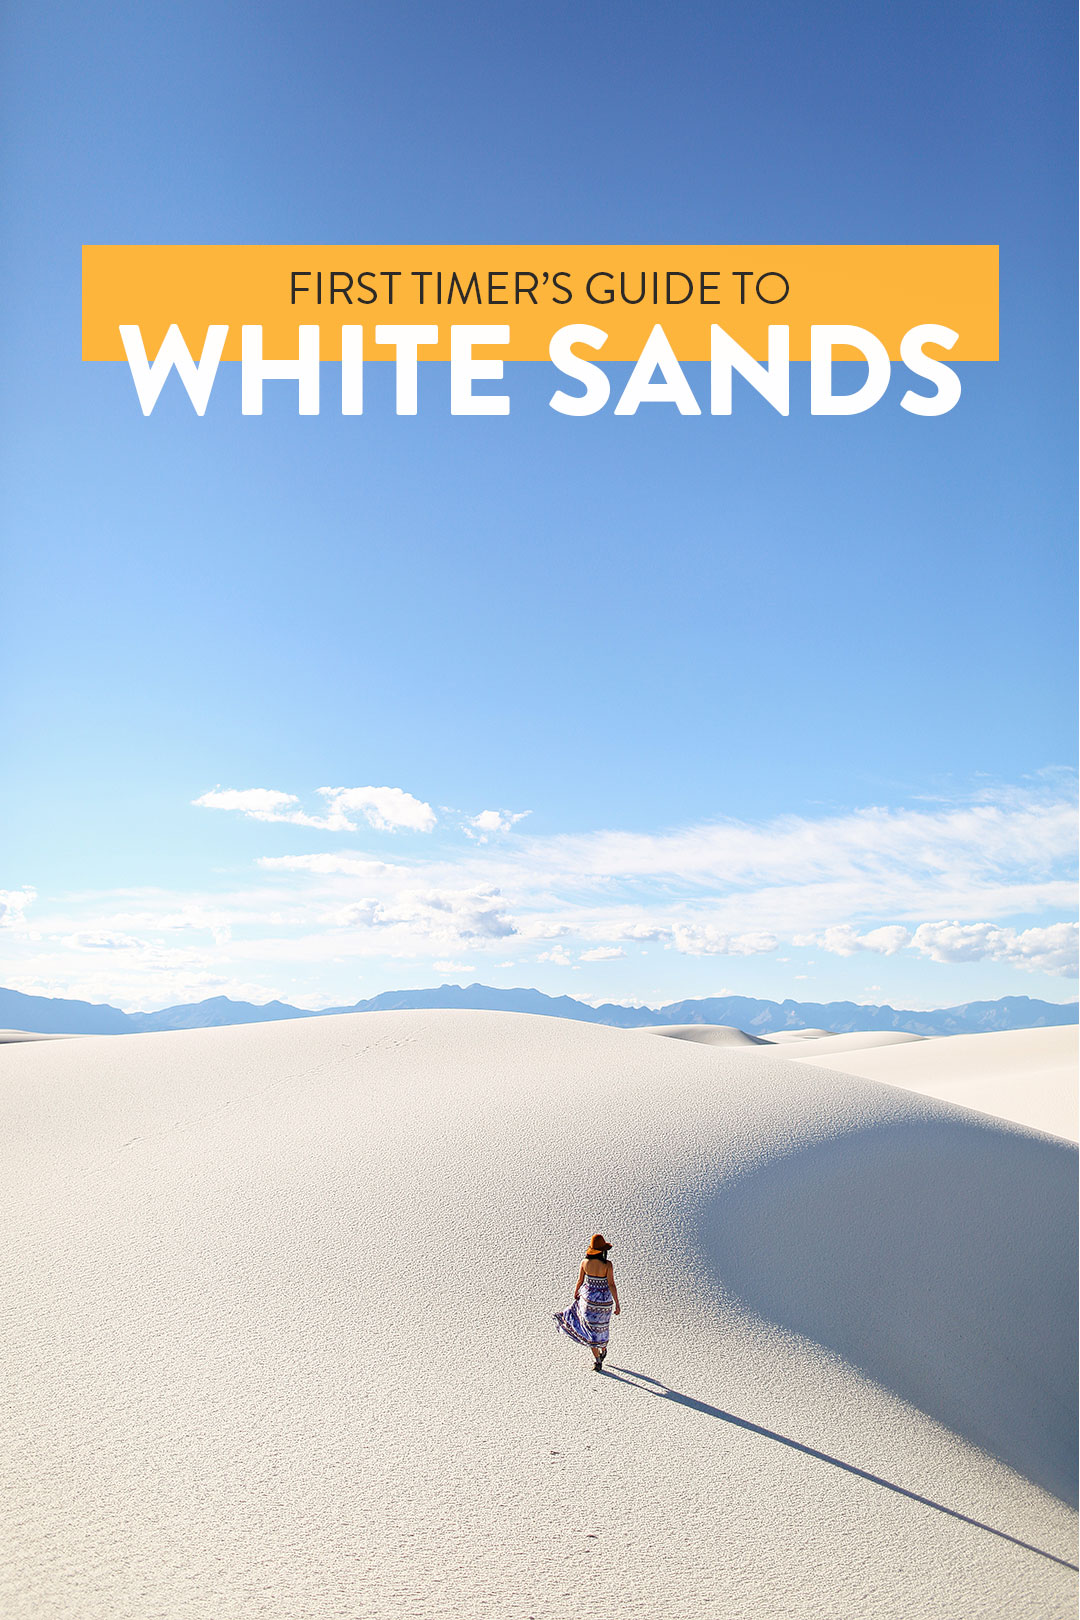 First Timer's Guide to White Sands National Monument New Mexico